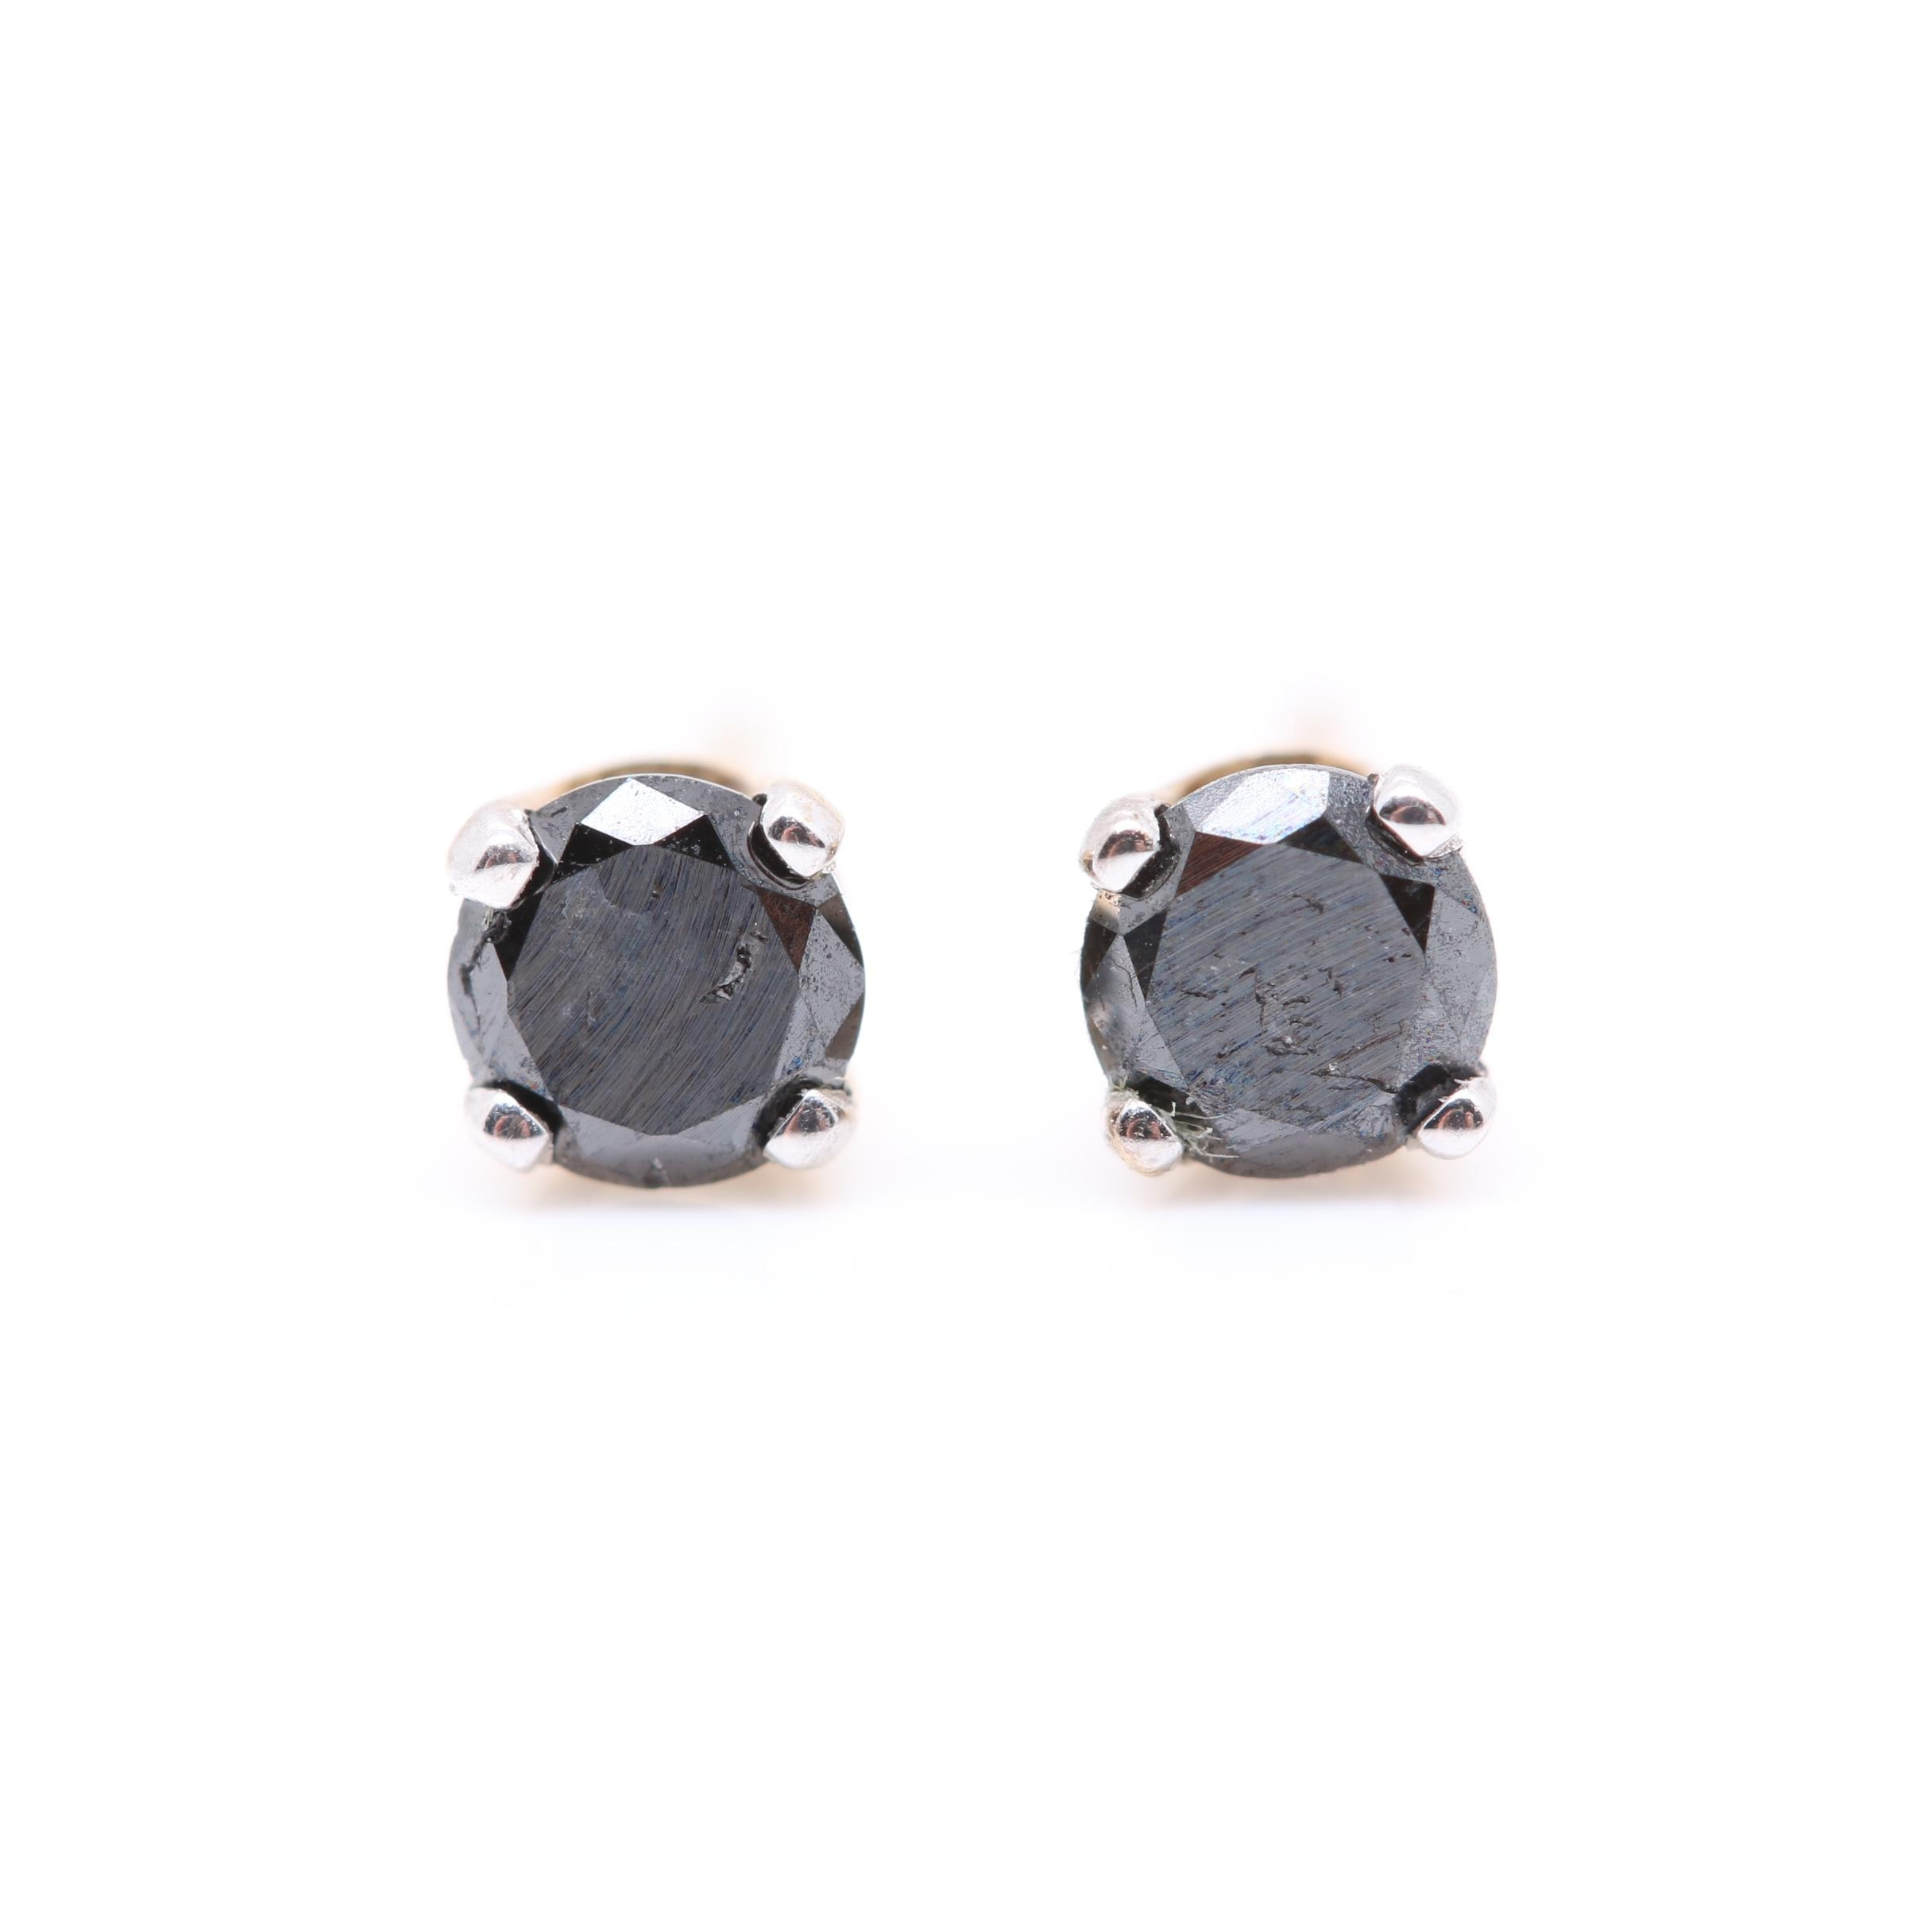 10K and 14K Yellow Gold Black Diamond Stud Earrings